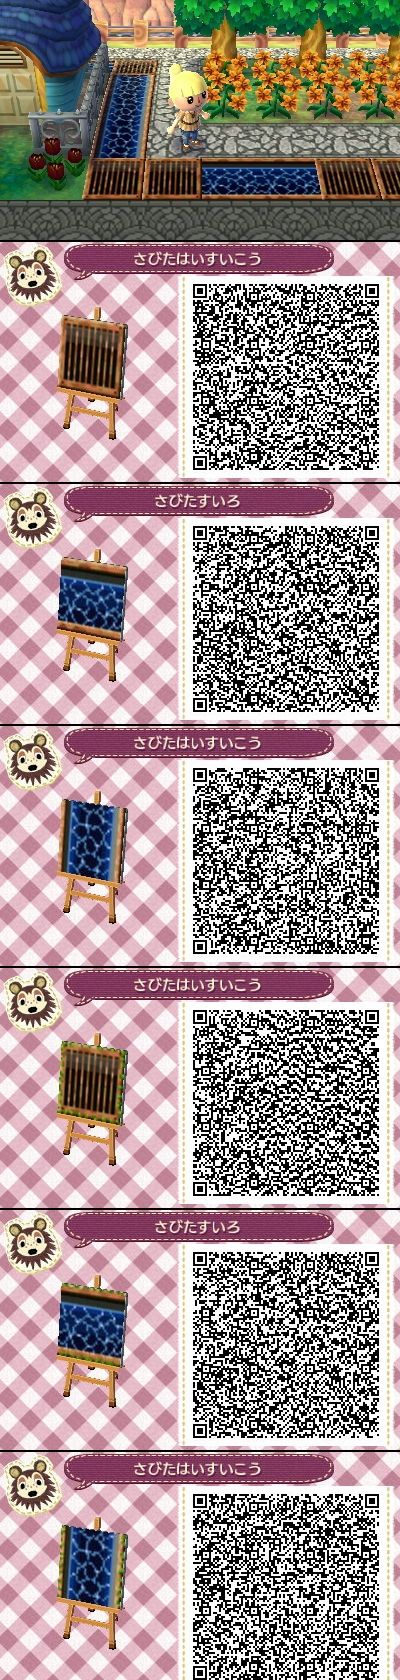 Animal Crossing New Leaf QR codes water